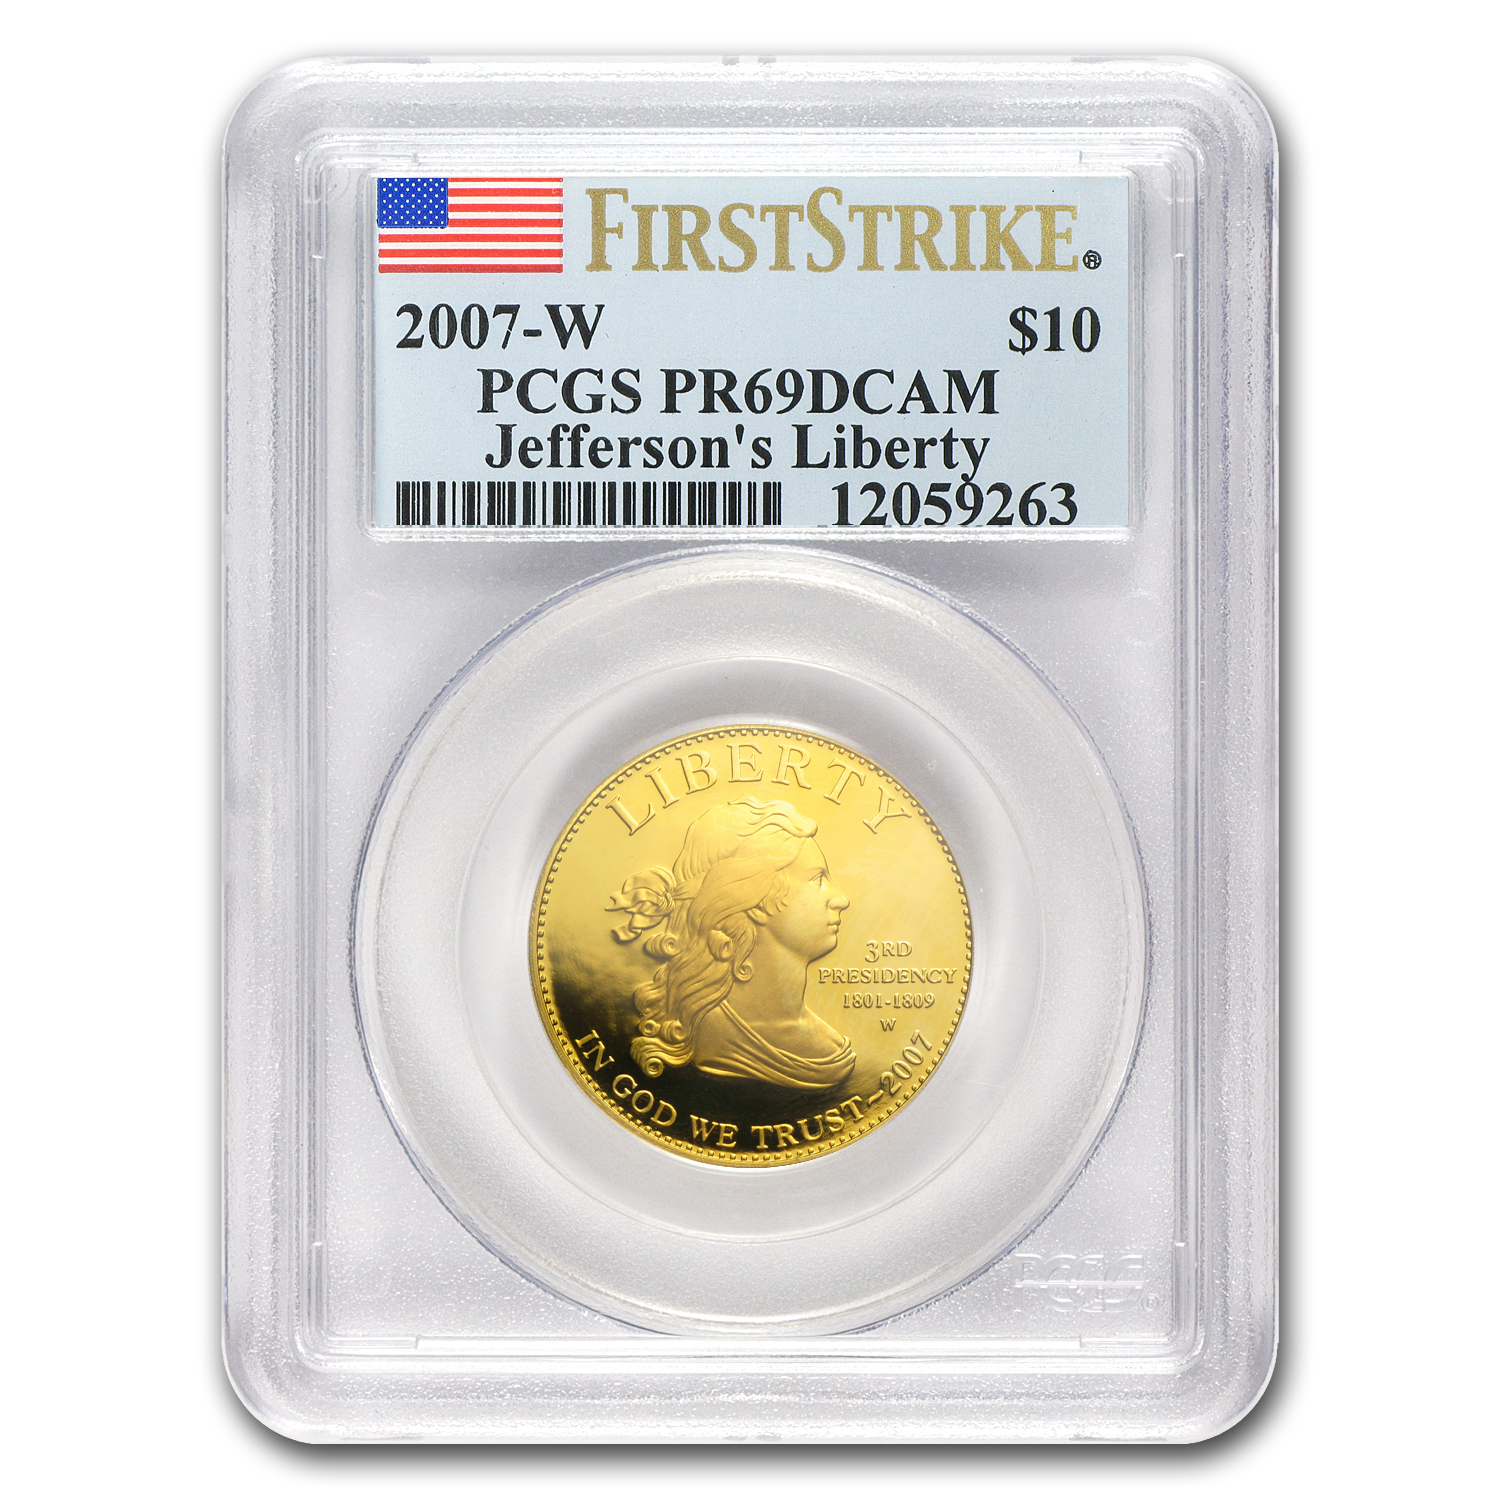 2007-W 1/2 oz Proof Gold Jefferson's Liberty PR-69 PCGS (FS)